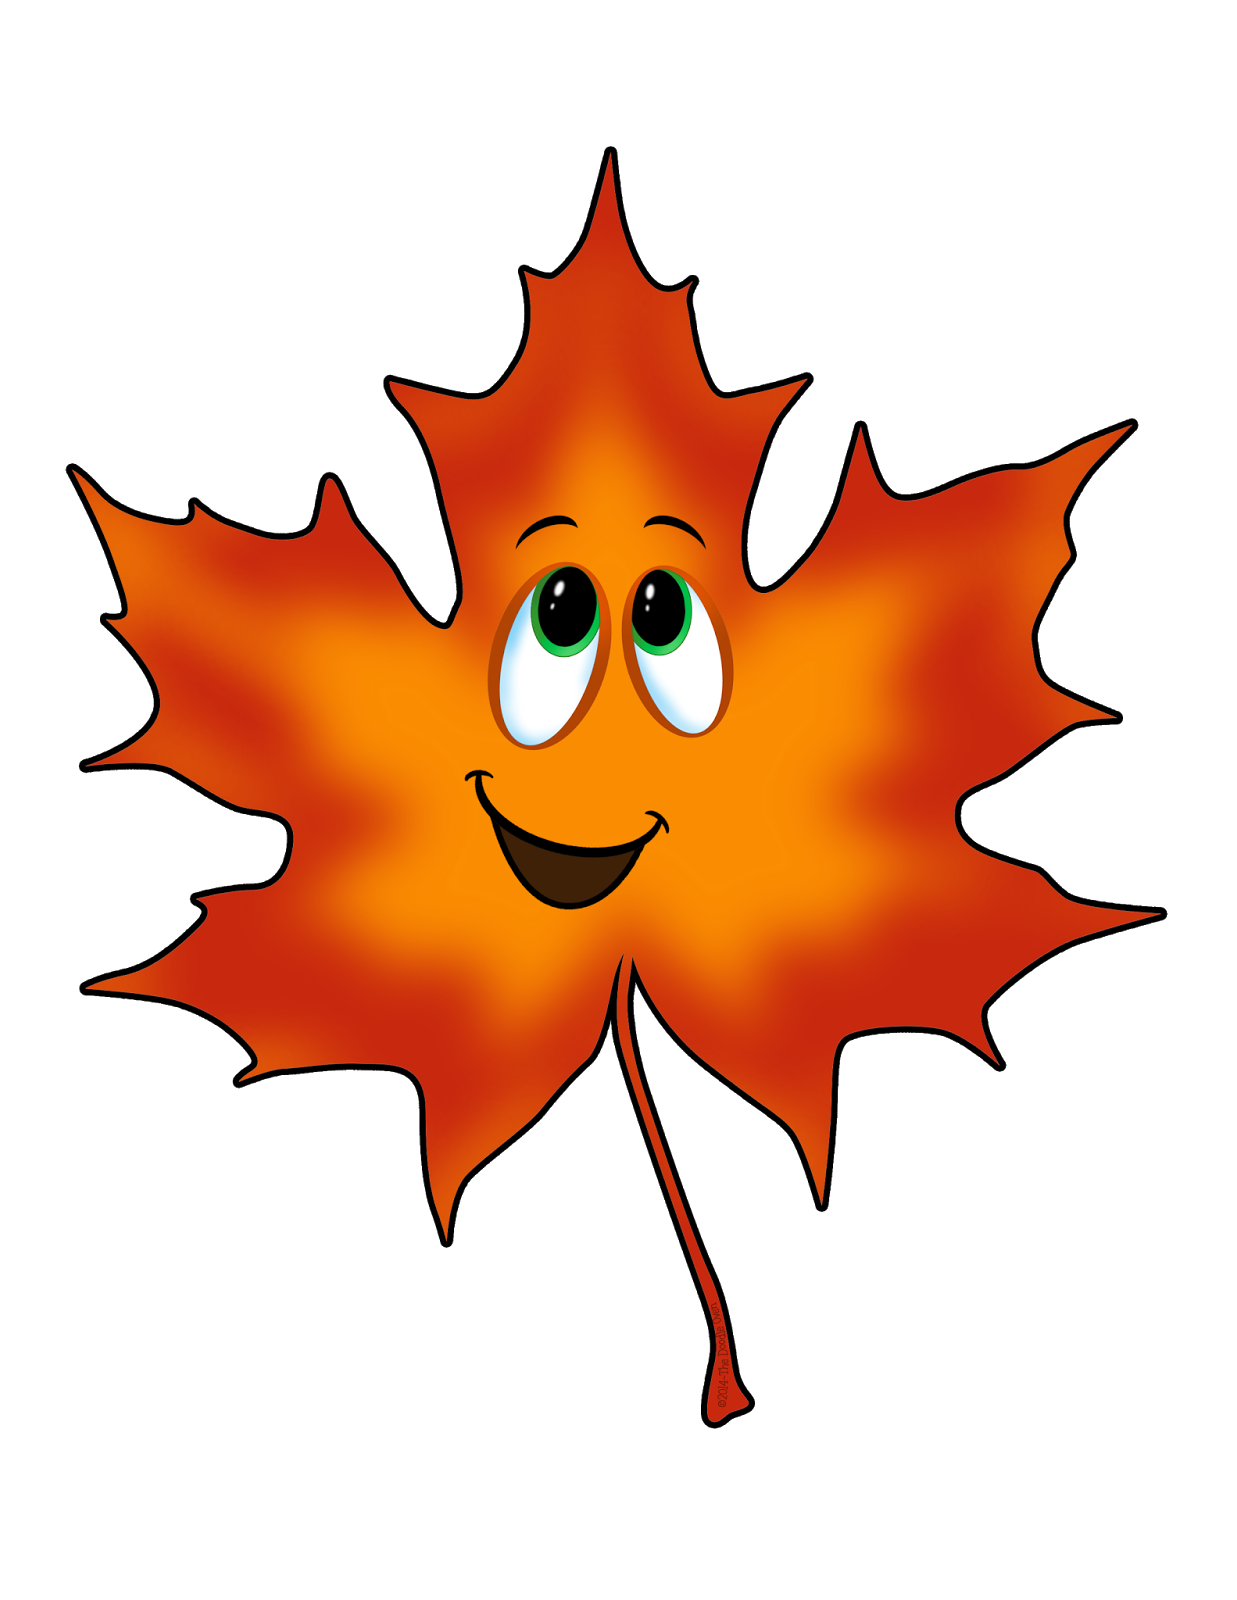 Fall Decorations Clipart | Free download on ClipArtMag